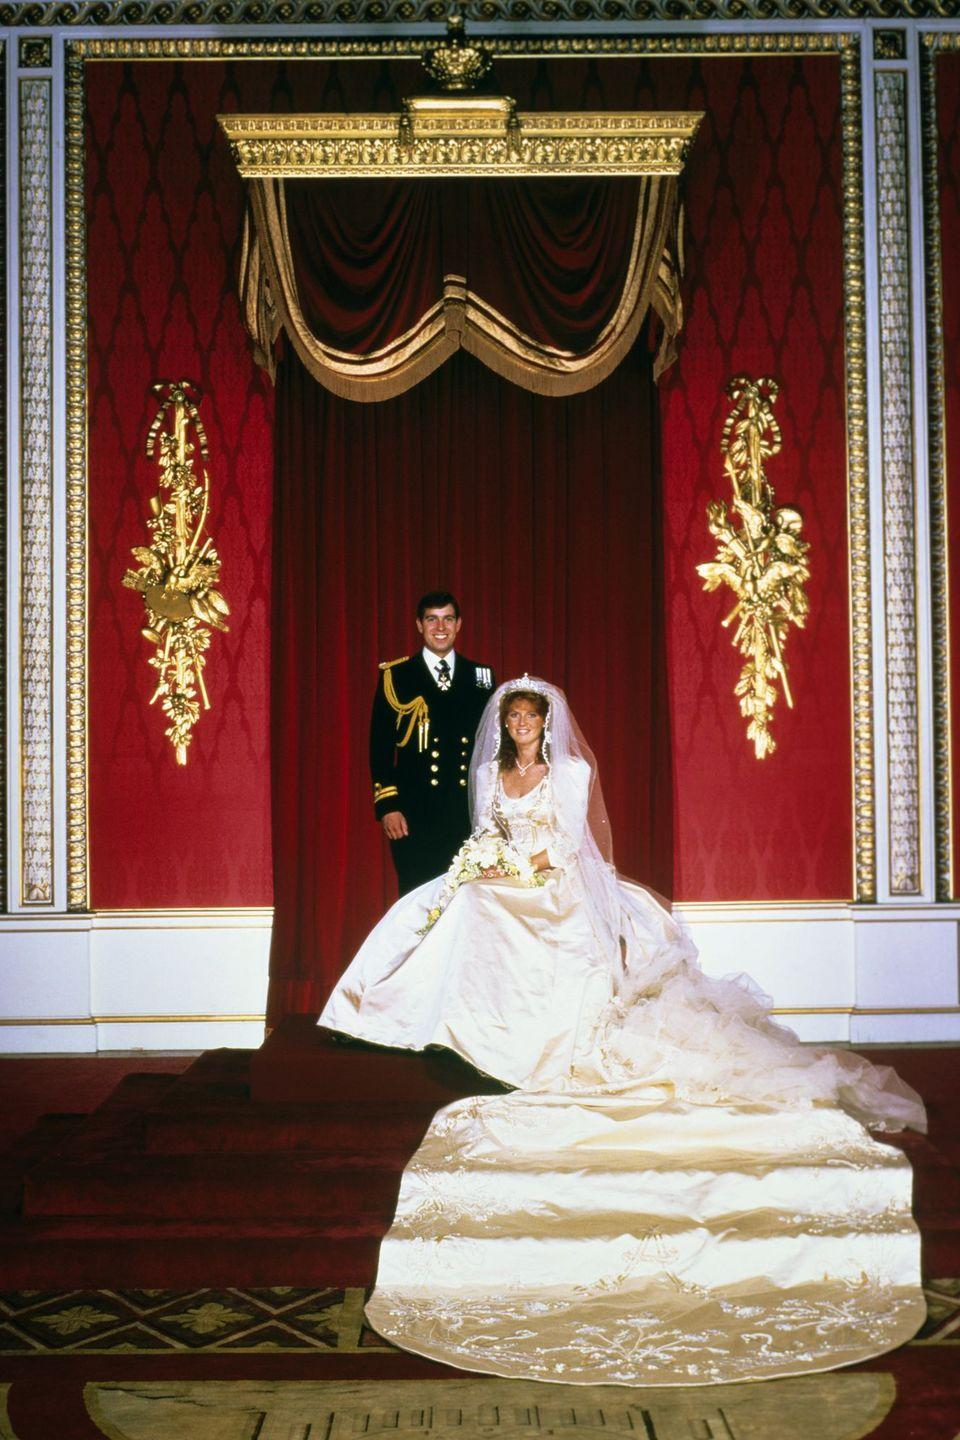 "<p>Ferguson's father was a polo manager for the royal family, and during her time running in royal crowds, she became dear friends with Lady Diana Spencer, long before she was Princess Diana. After Charles and Diana's wedding, Sarah was invited to stay with the Queen at Windsor Castle during Ascot week in 1985, where she met Andrew. </p><p>The two were seated next to one another at lunch, the Duchess of York recalled in her memoir, and when Sarah refused dessert because she was on a diet, Andrew told her it would be impolite to skip the final course. When it came time for him to take his portion, he declined, at which she wrote, ""I indignantly swatted him on the shoulder with the back of my hand."" The two were married just over a year later.</p>"